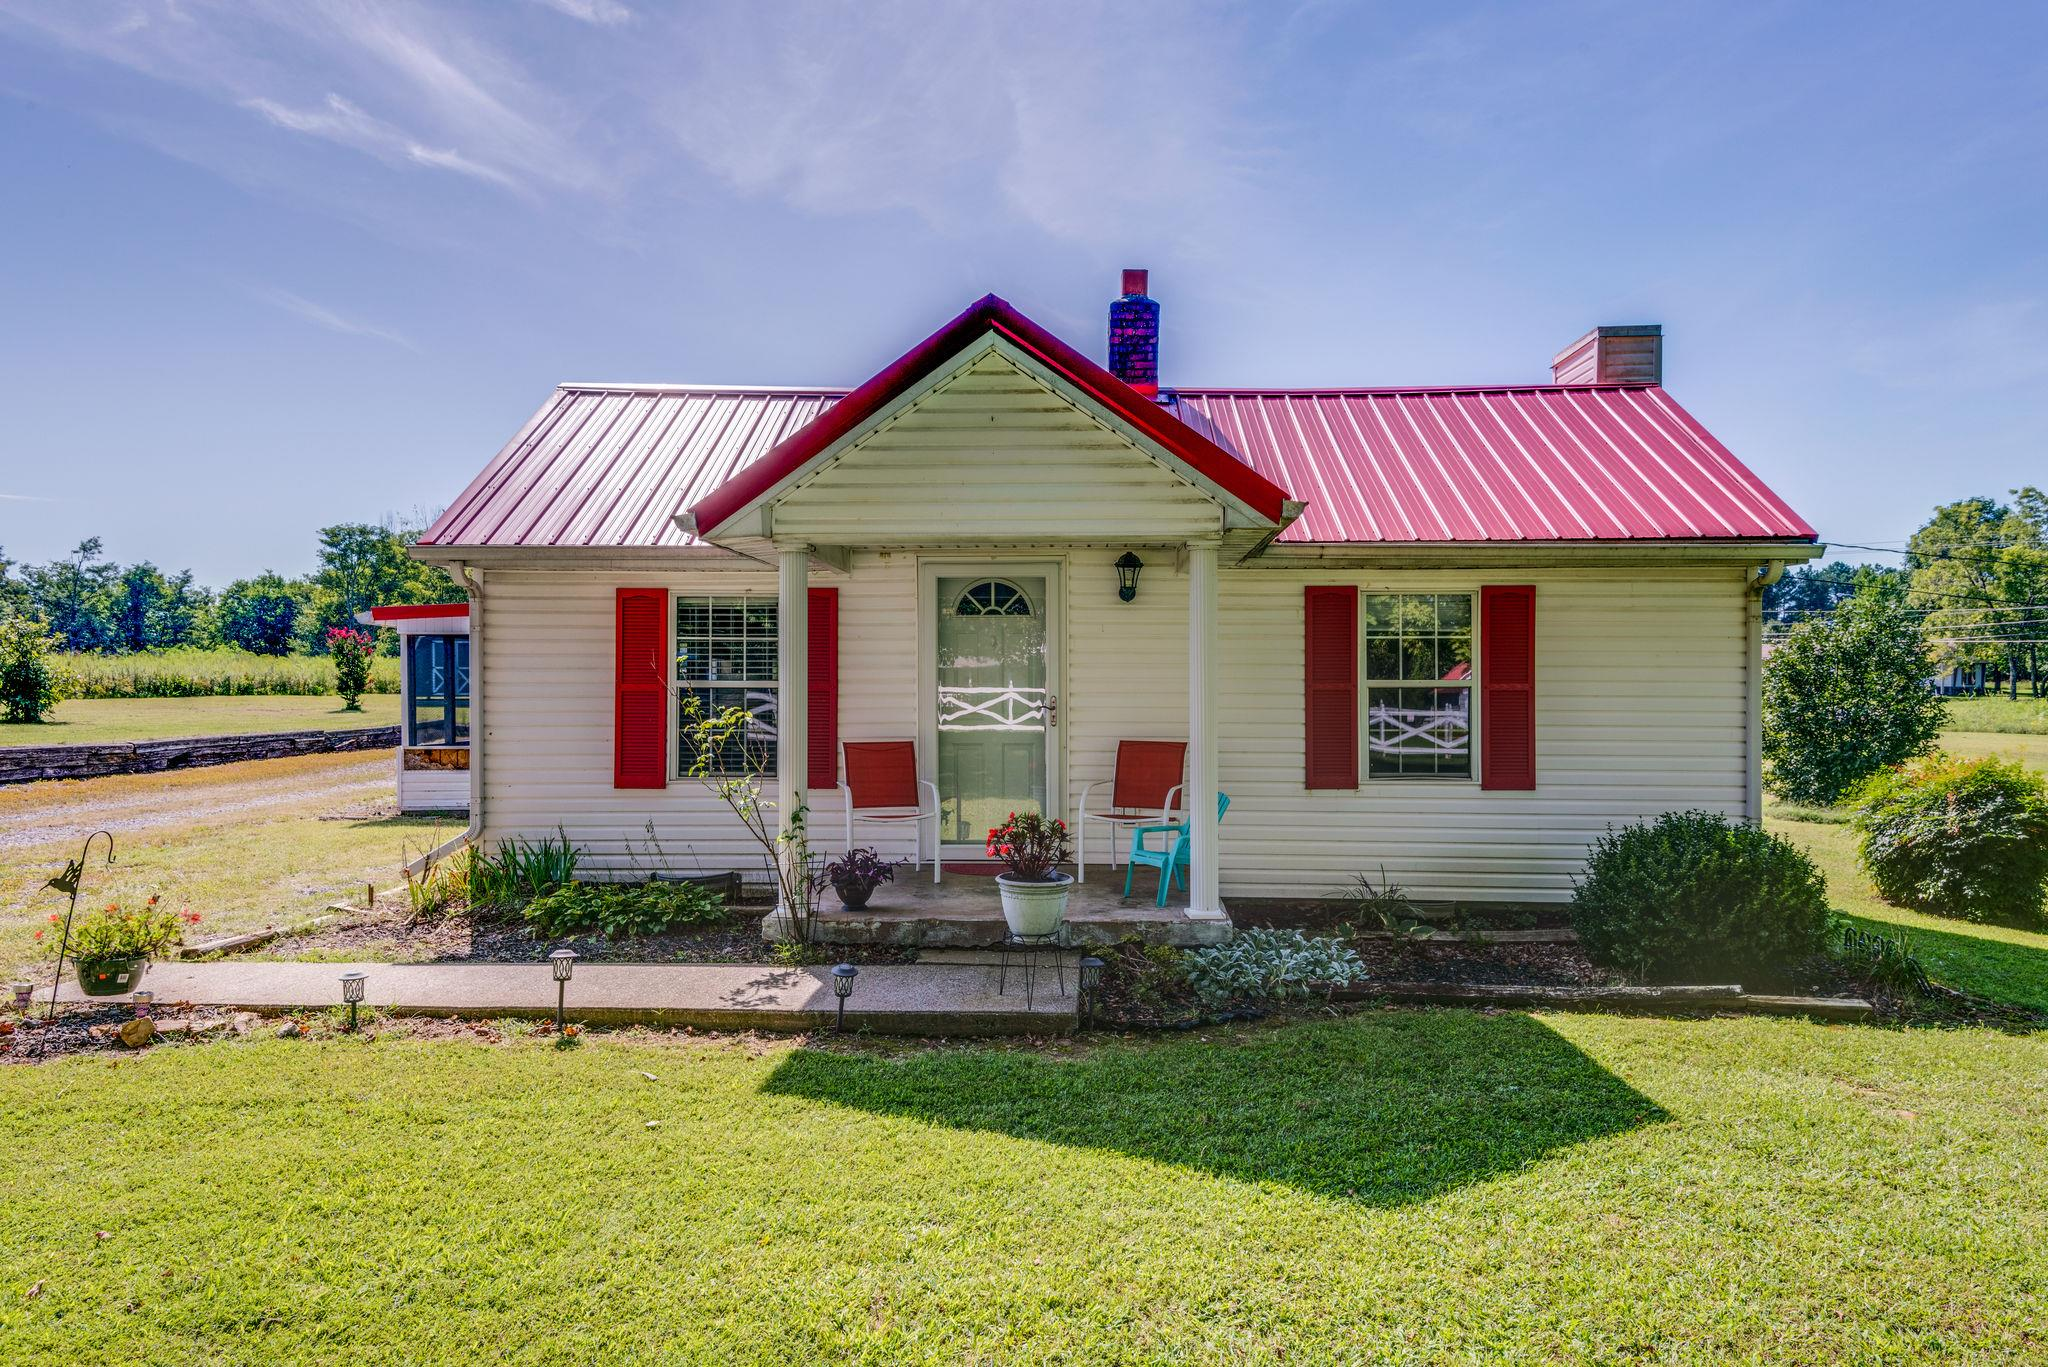 7700 Greenbrier Rd, Joelton, TN 37080 - Joelton, TN real estate listing